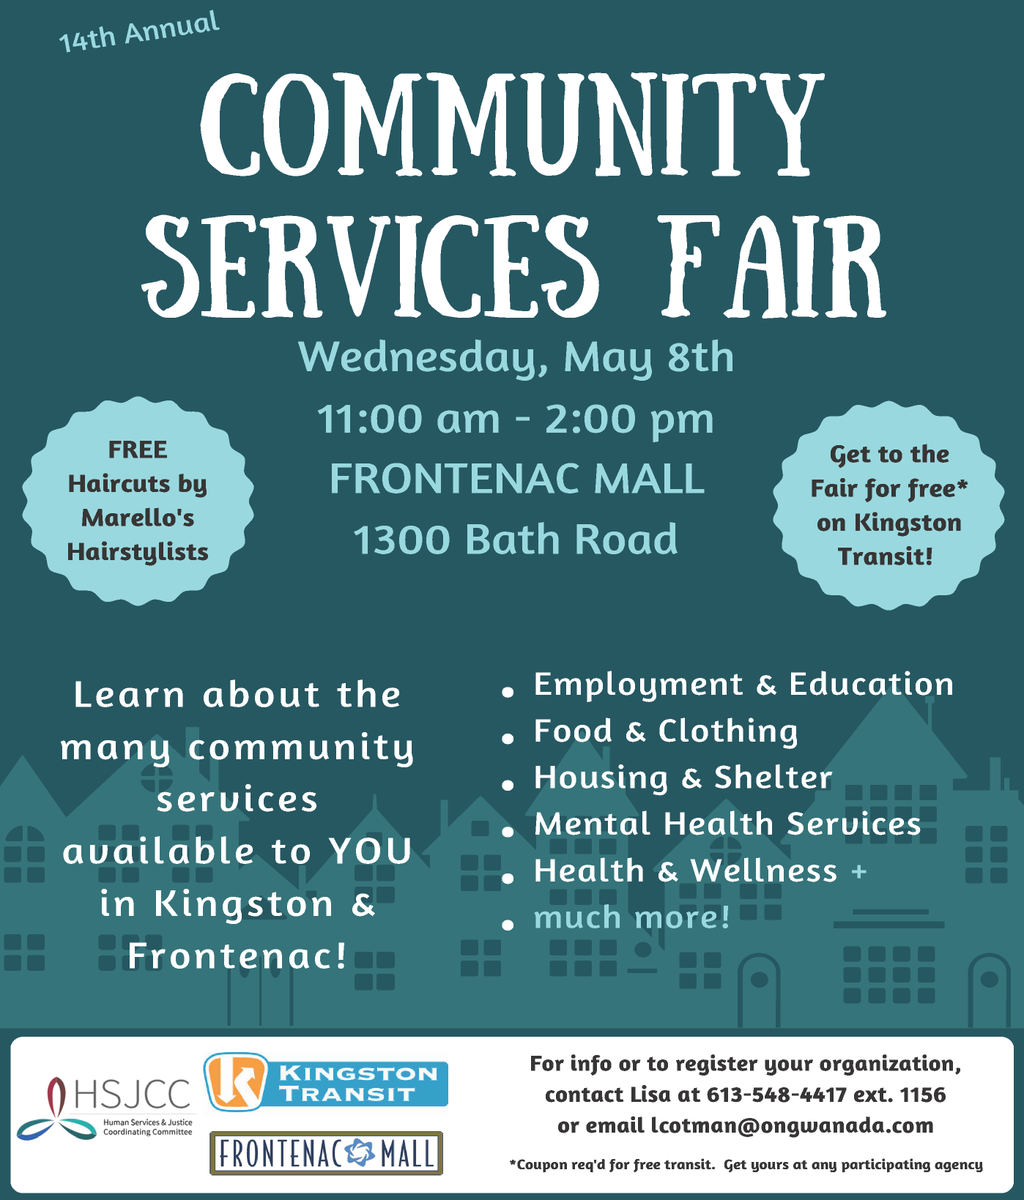 test Twitter Media - The 14th annual Community Services Fair is taking place on Wednesday, May 8 at the Frontenac Mall. Providence Care will be there along with over 80 other community resources. Stop by and learn about what resources are available to you in the #ygk community. https://t.co/dQObwJLFwe